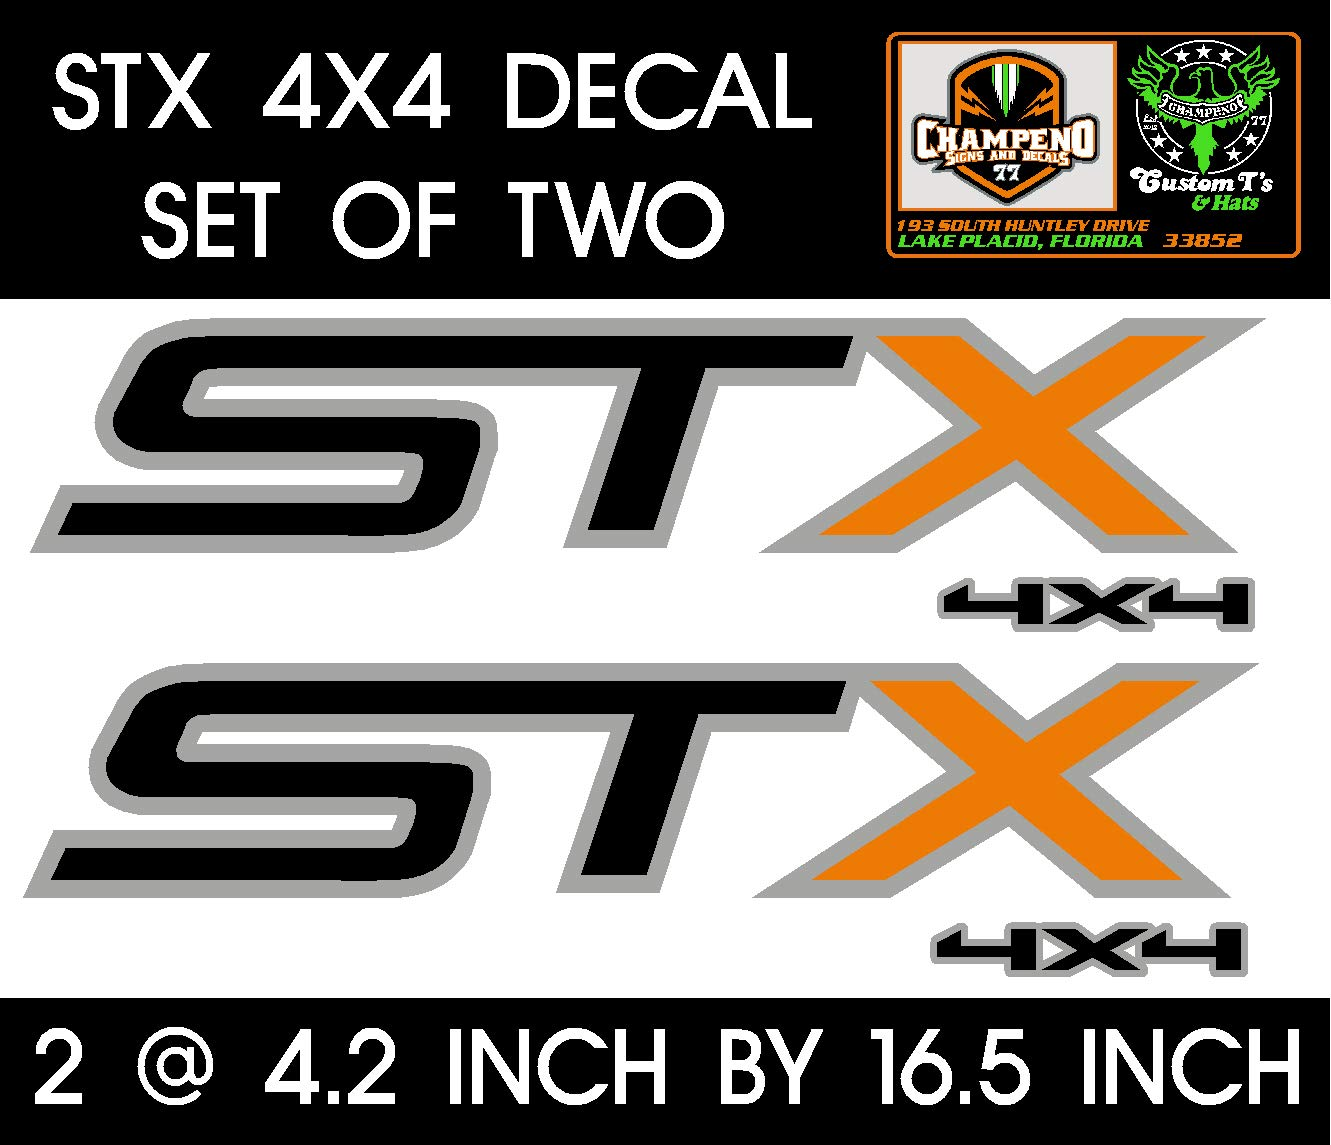 Decal Black and Orange F-350 F-250 6 to 8 Year Outdoor Life Set of Two Ford STX 4X4 Metallic Silver Graphic Sticker Truck Bed Side Decal F-150 Truck Fender Graphic.